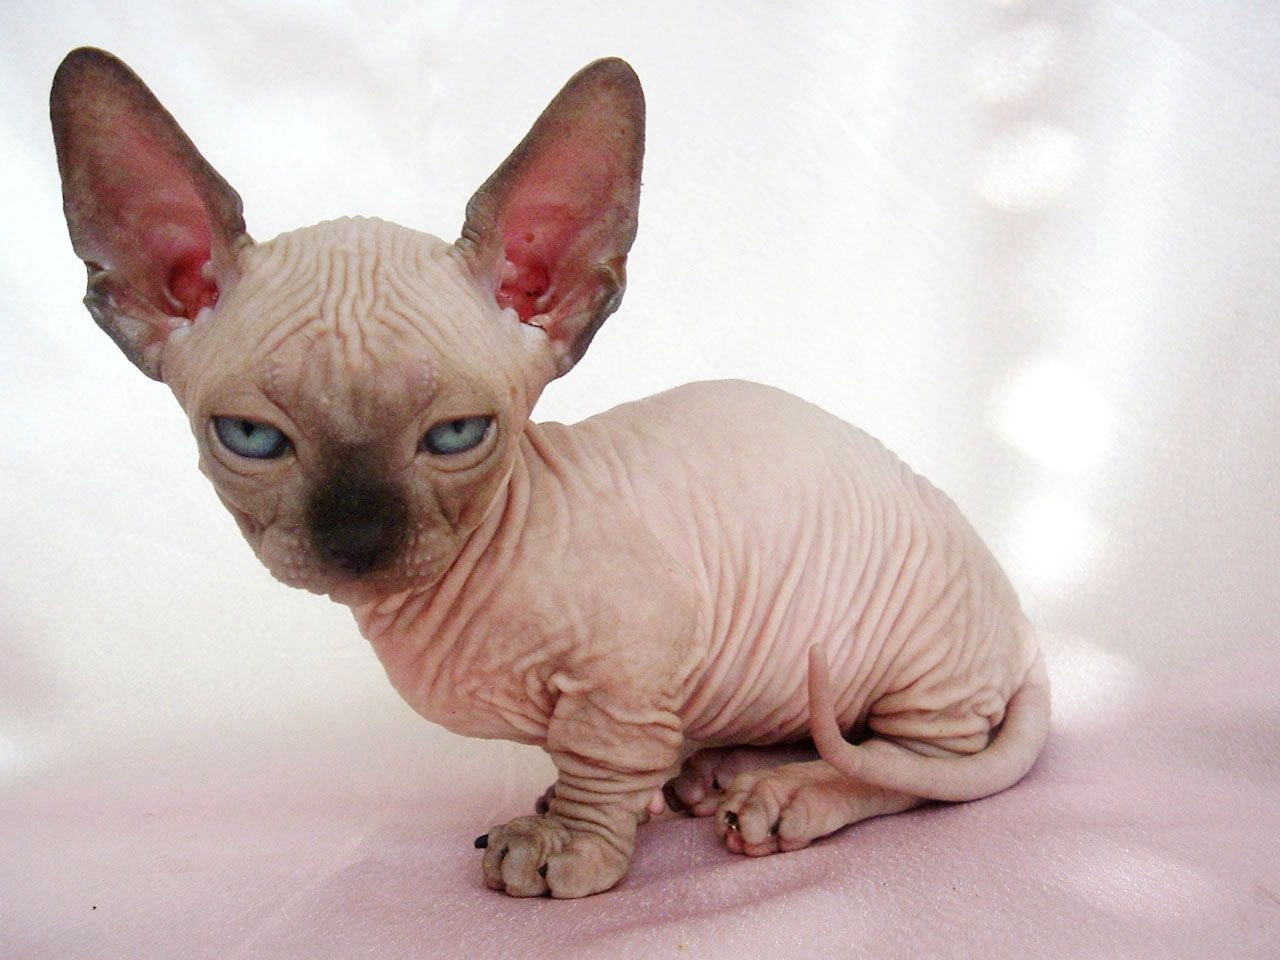 This baby hairless cat. The cutest [...] ever